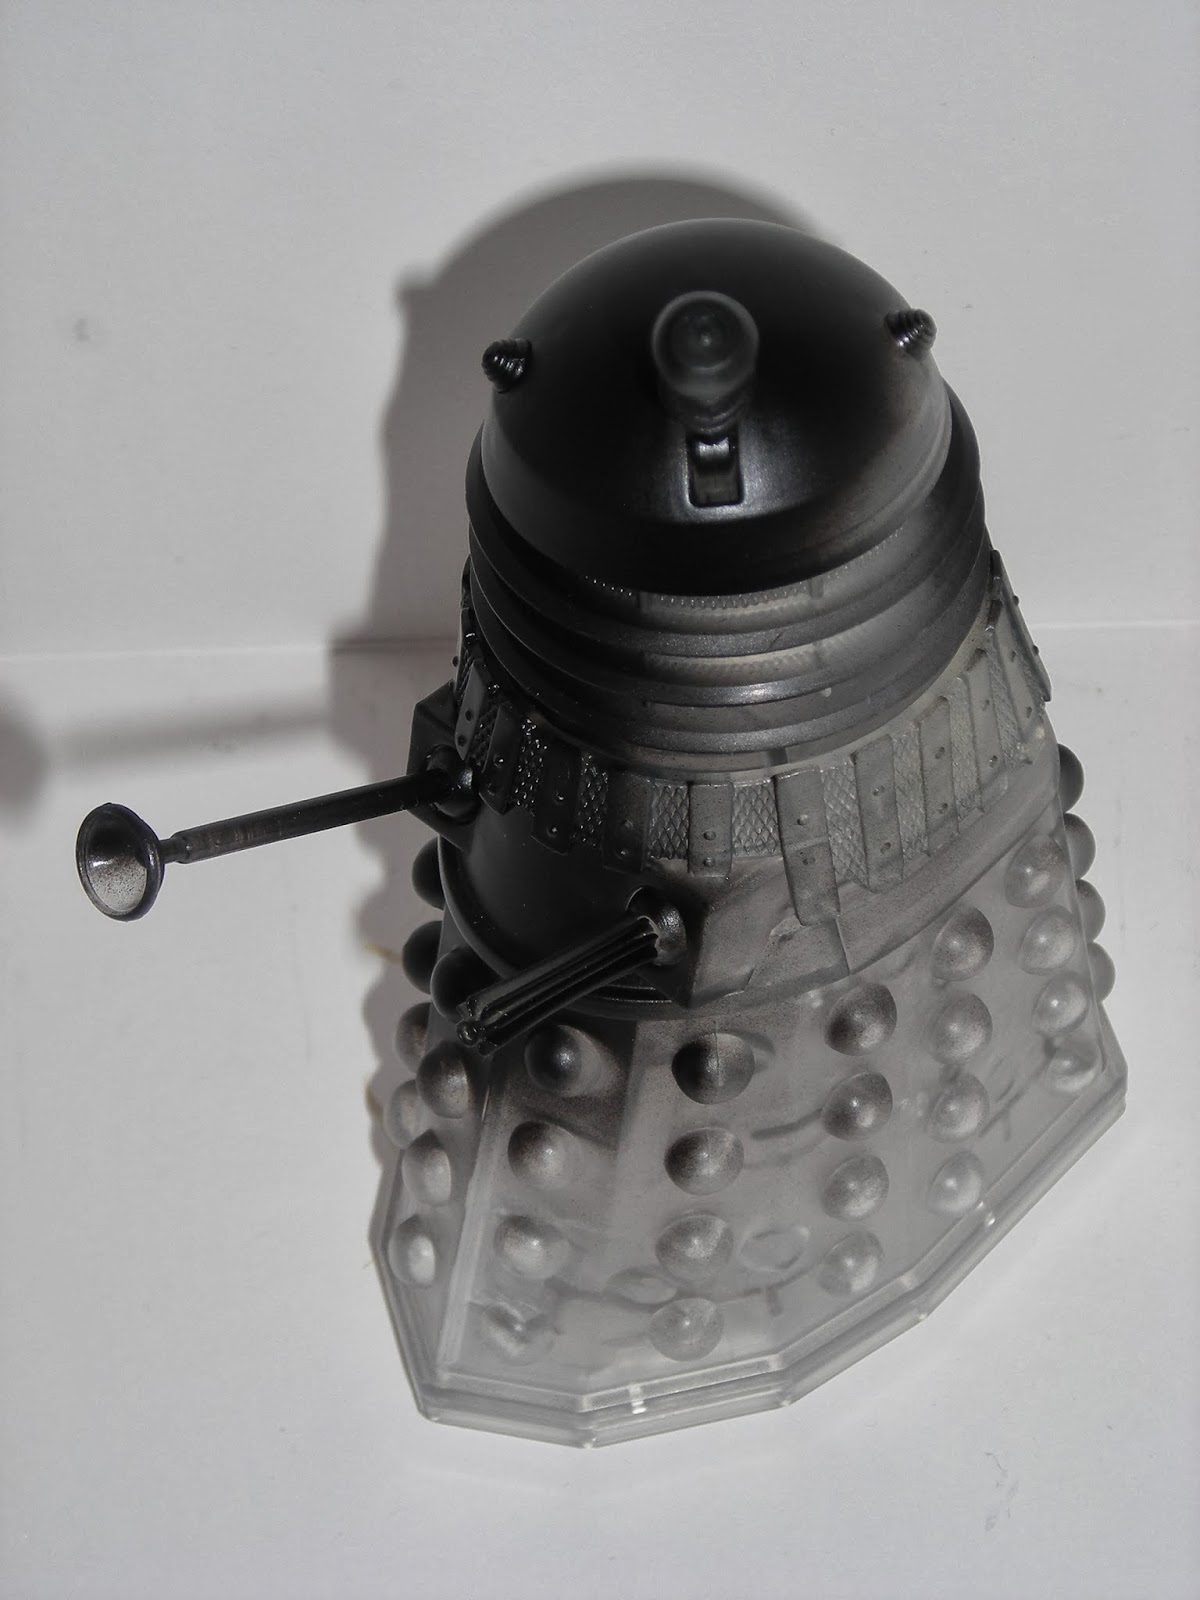 Dalek from below